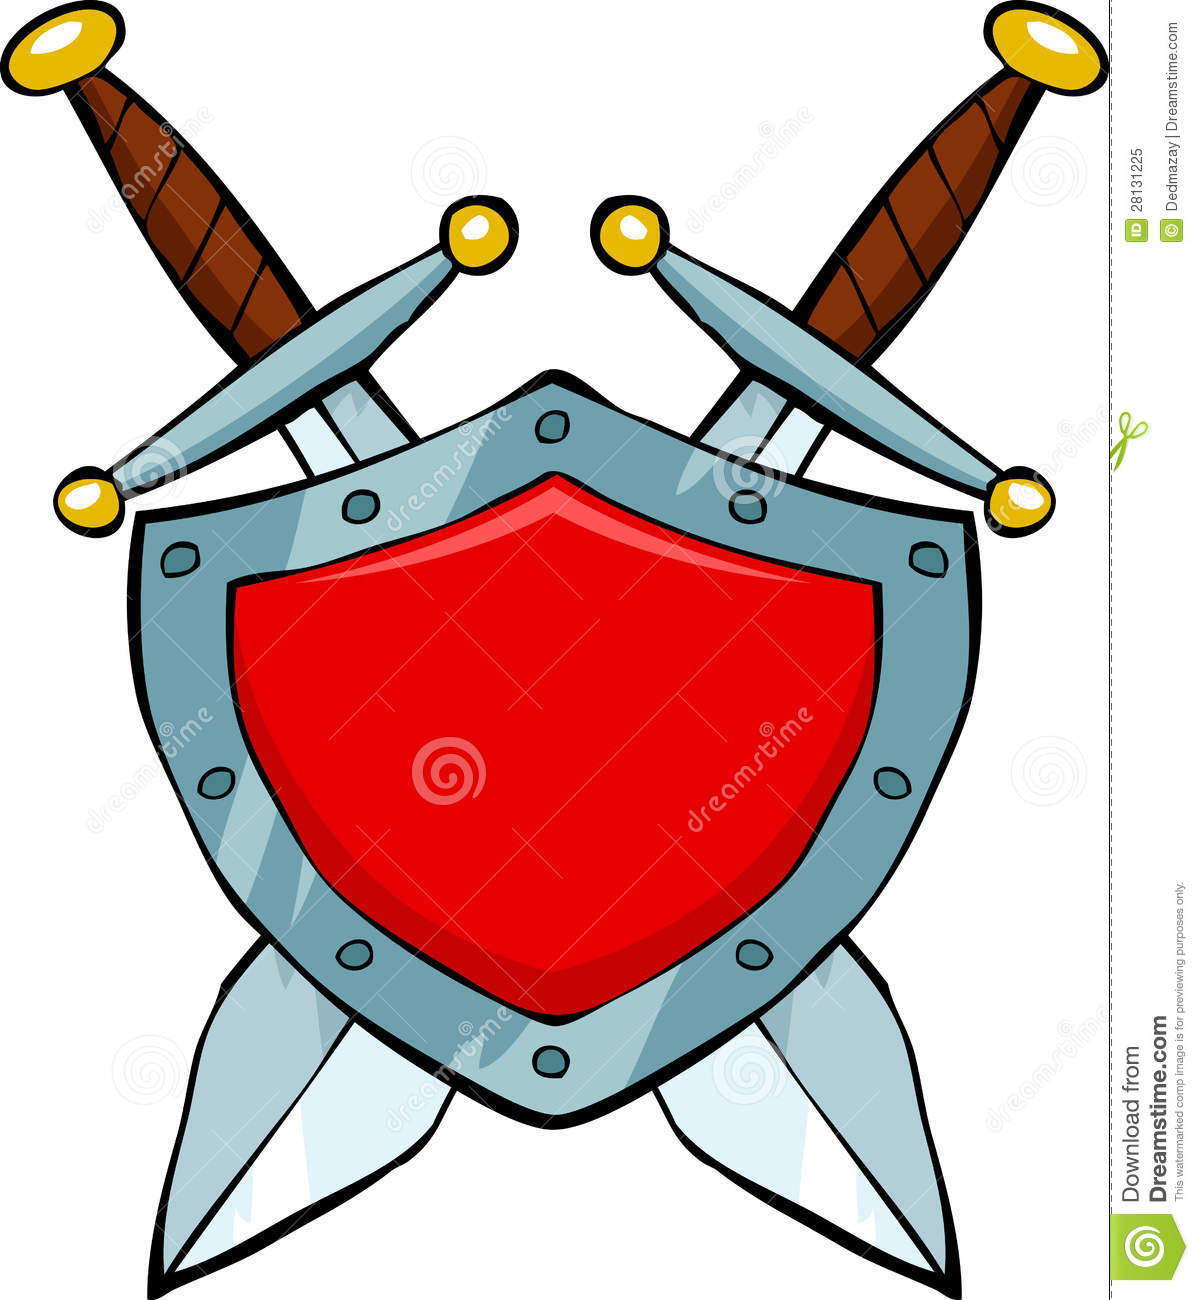 And shield free download. Clipart sword round